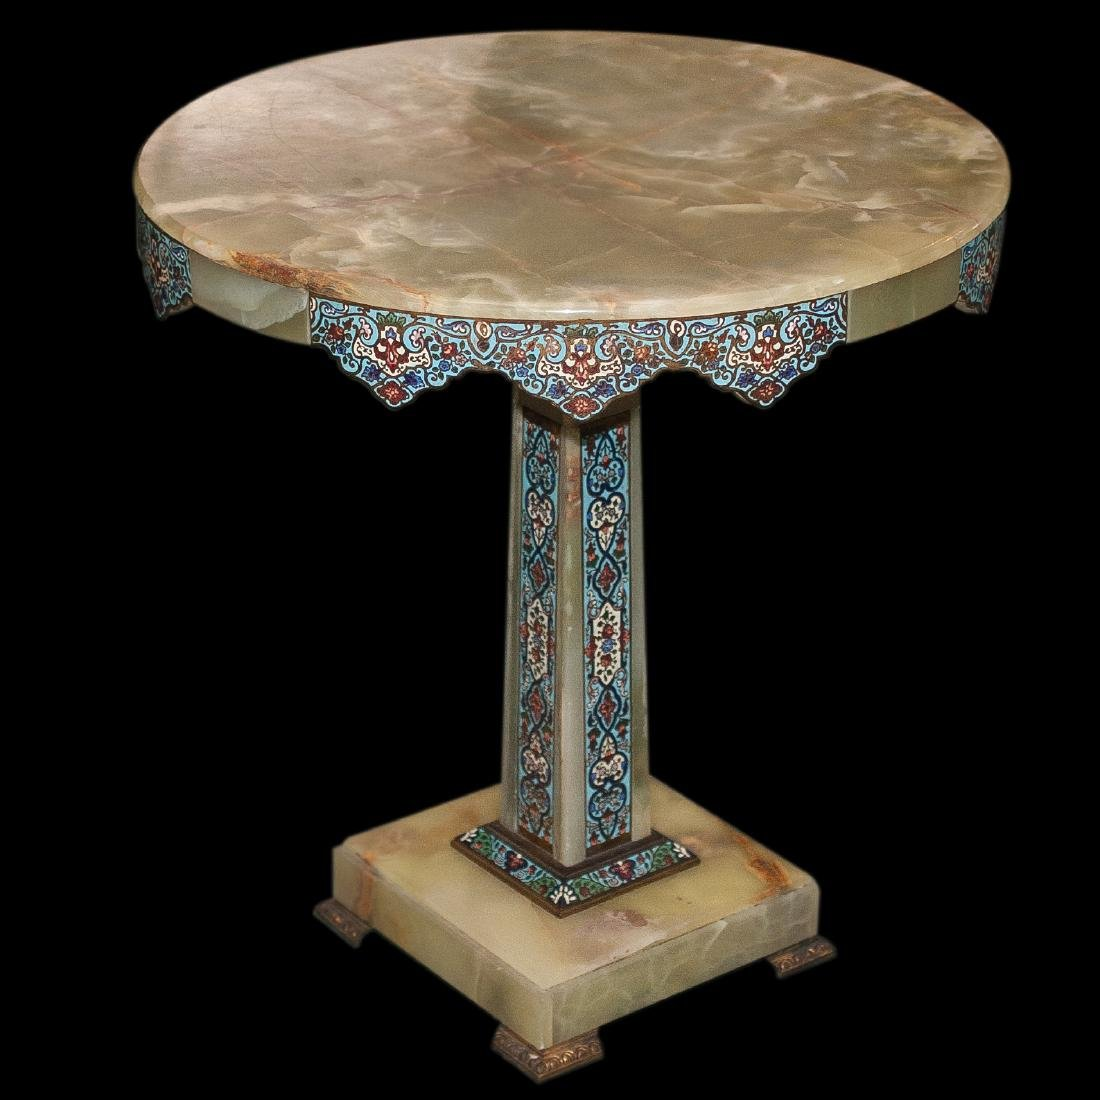 Antique Champleve Onyx Table